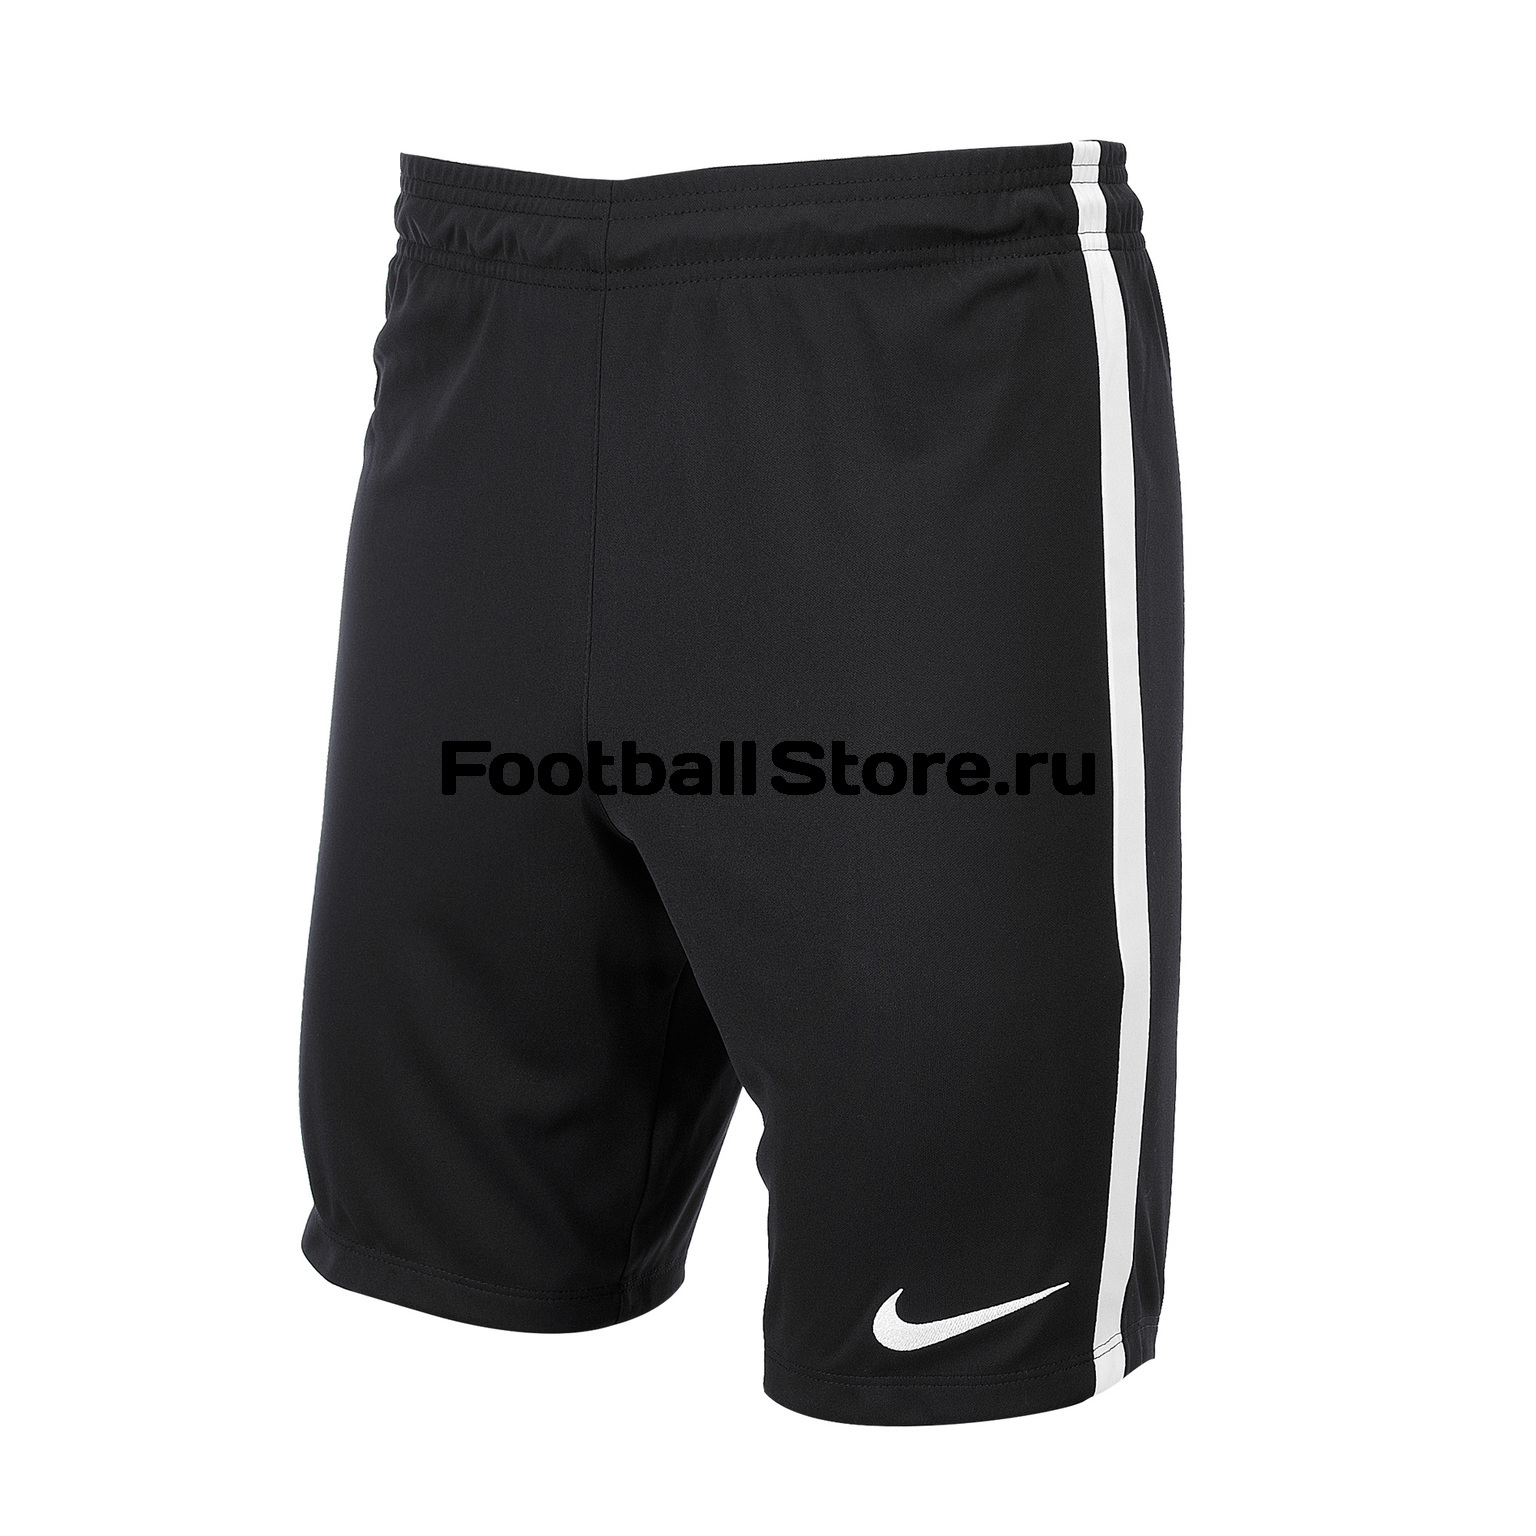 Игровые шорты Nike League Knit Short NB 725881-010